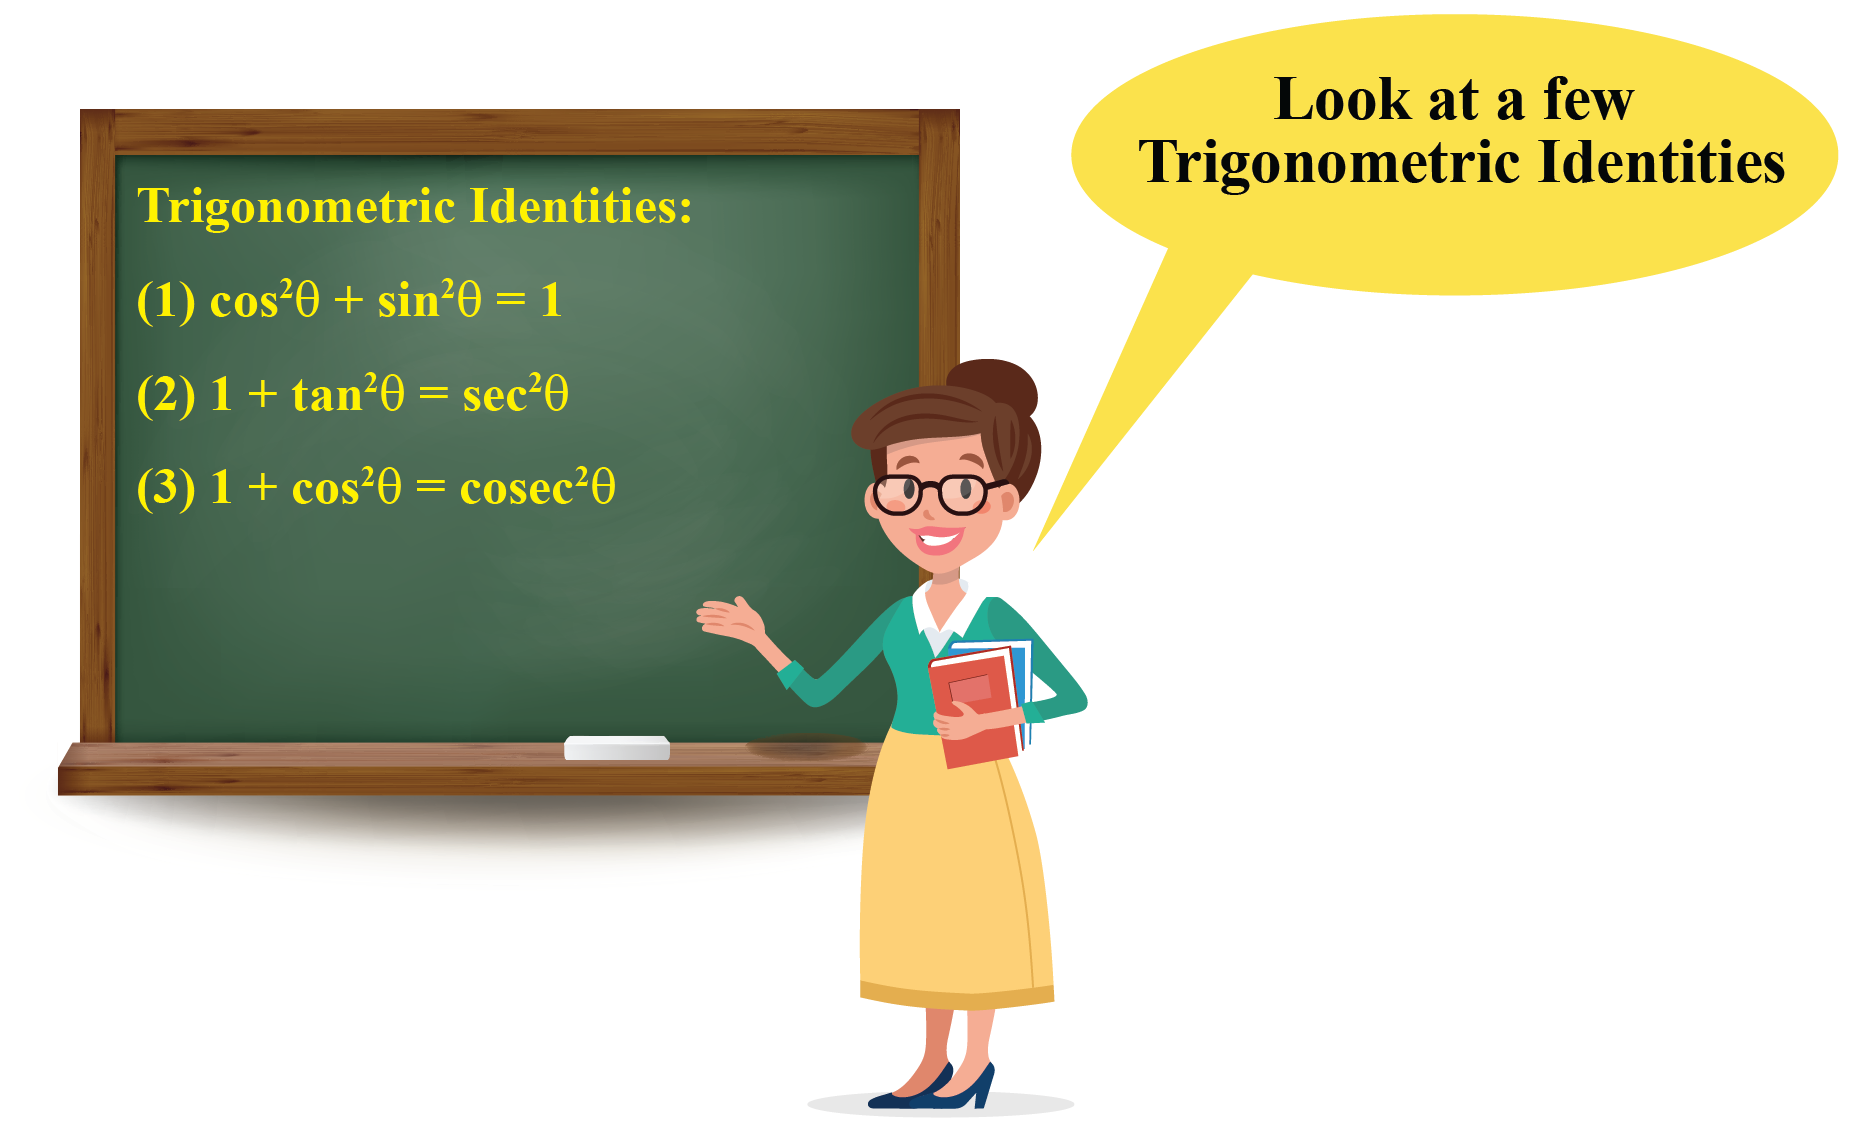 List of Trigonometric Identities